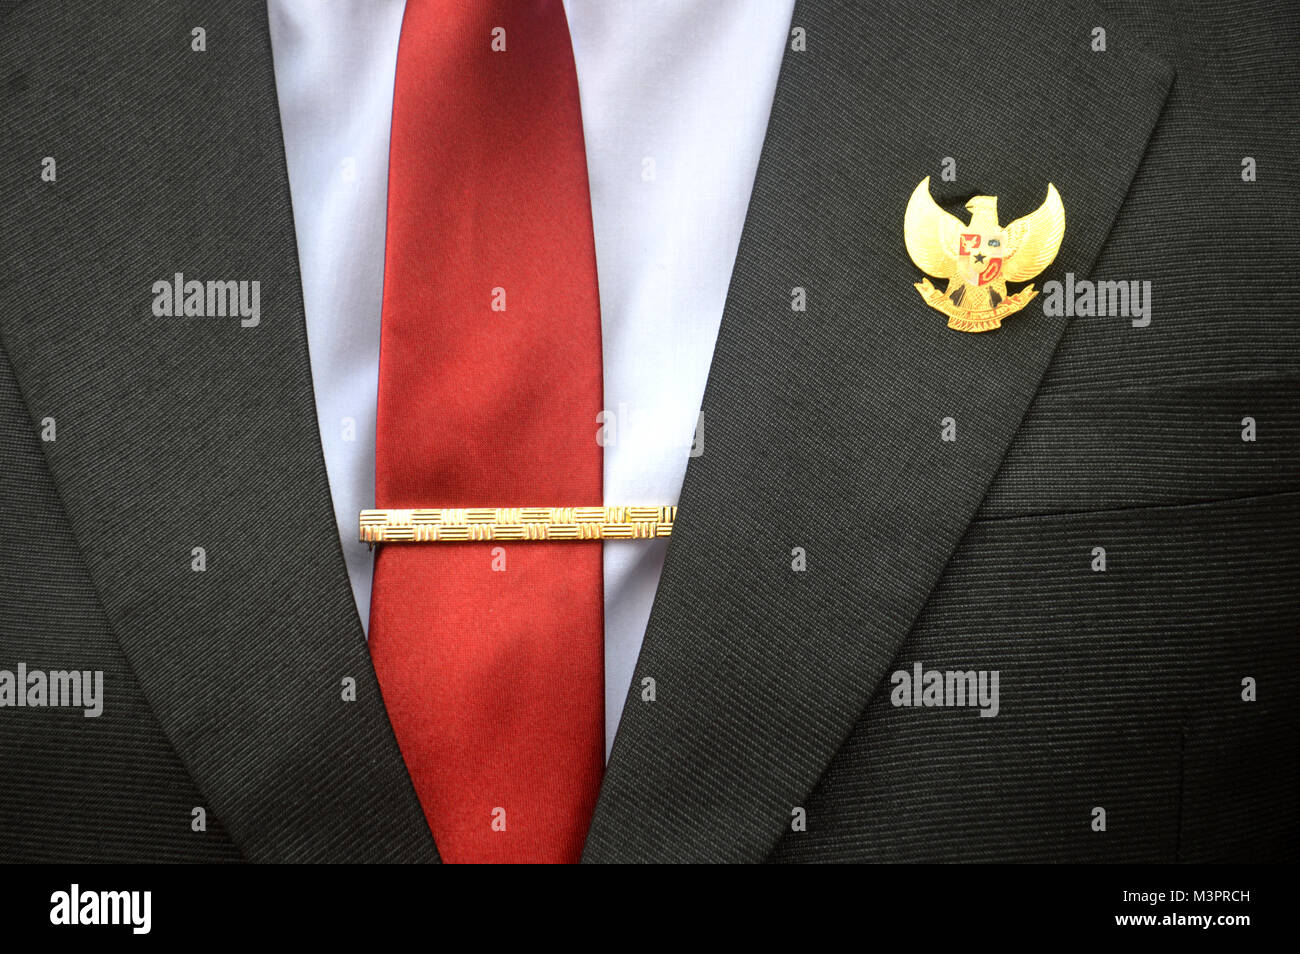 cravat silver bar collar necktie clip clasp pin gold brooch suit skinny tie hot mens